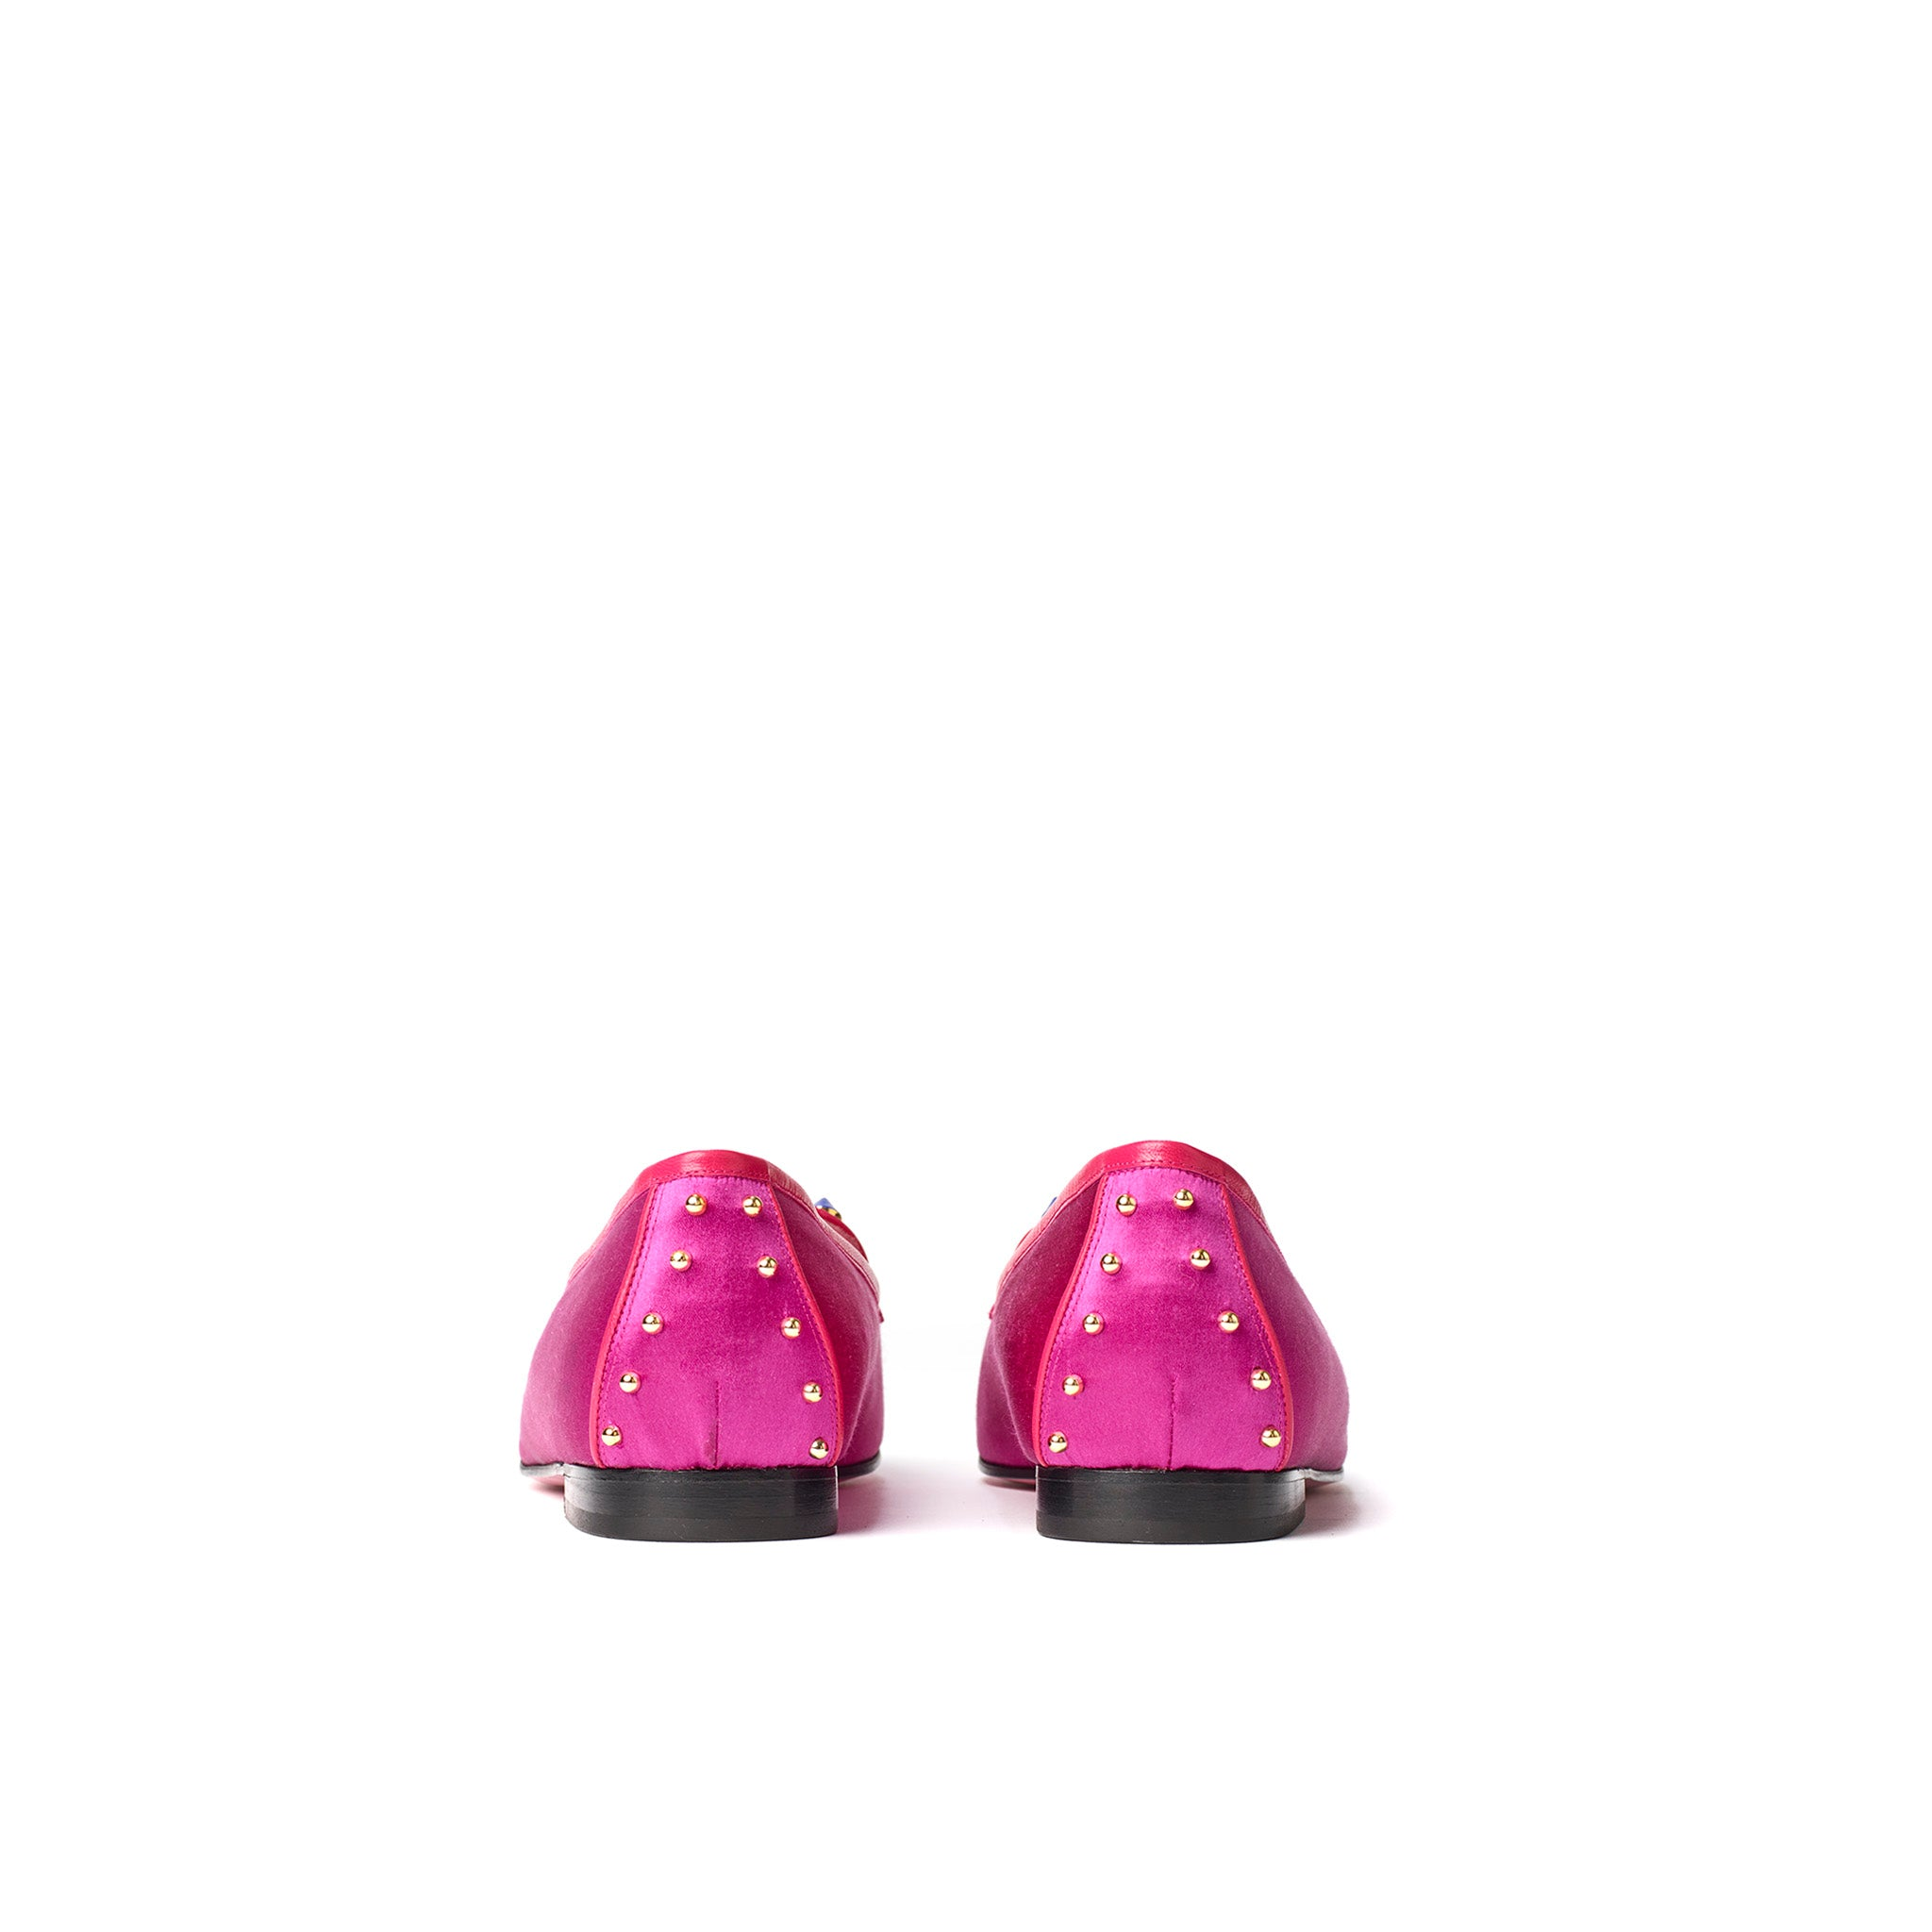 Phare Studded loafer in magenta silk satin with blue and gold studs top view